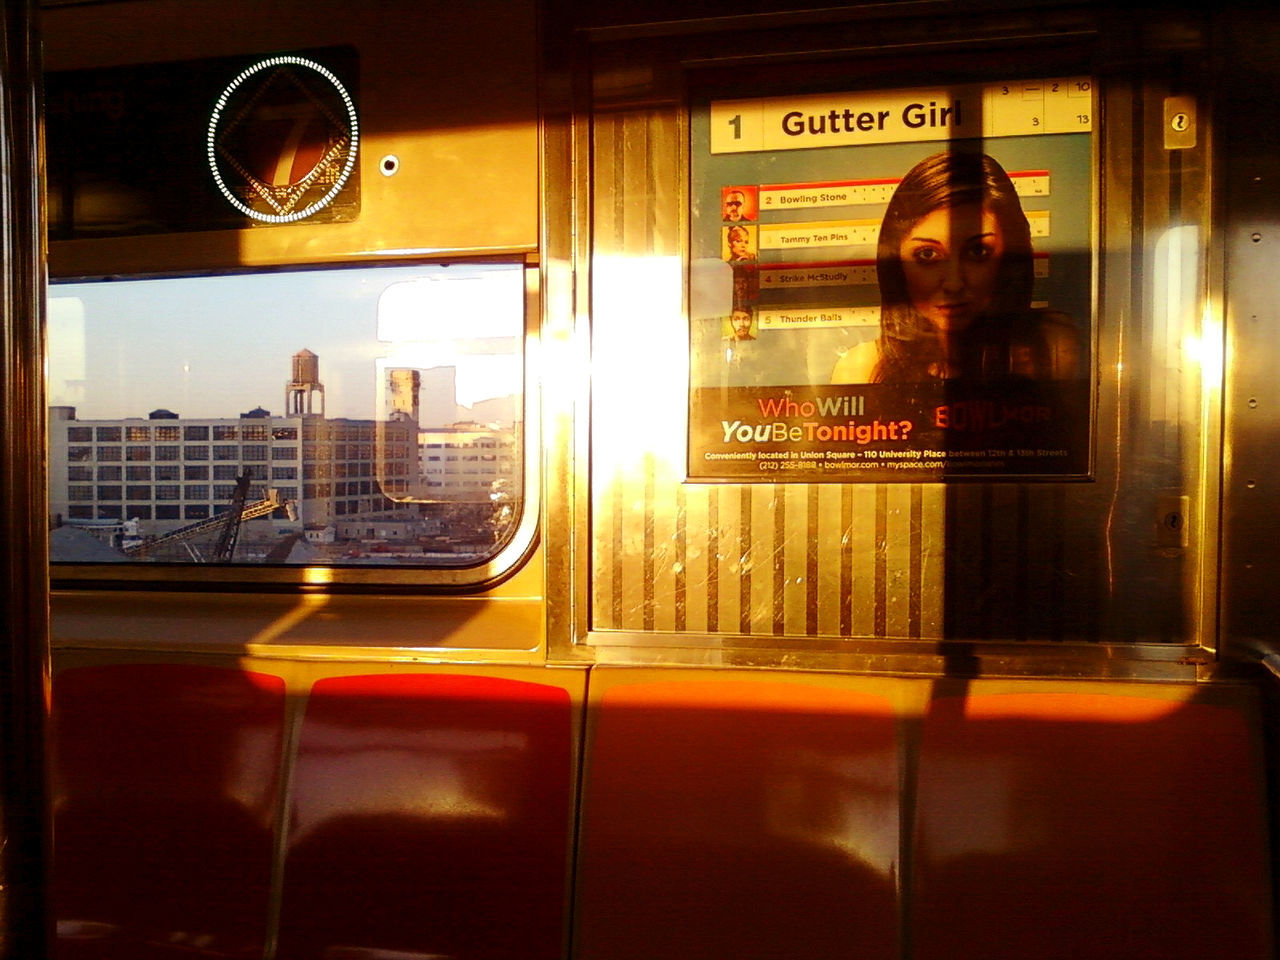 glass - material, text, reflection, window, real people, public transportation, indoors, communication, land vehicle, transportation, one person, illuminated, train - vehicle, lifestyles, young women, architecture, young adult, day